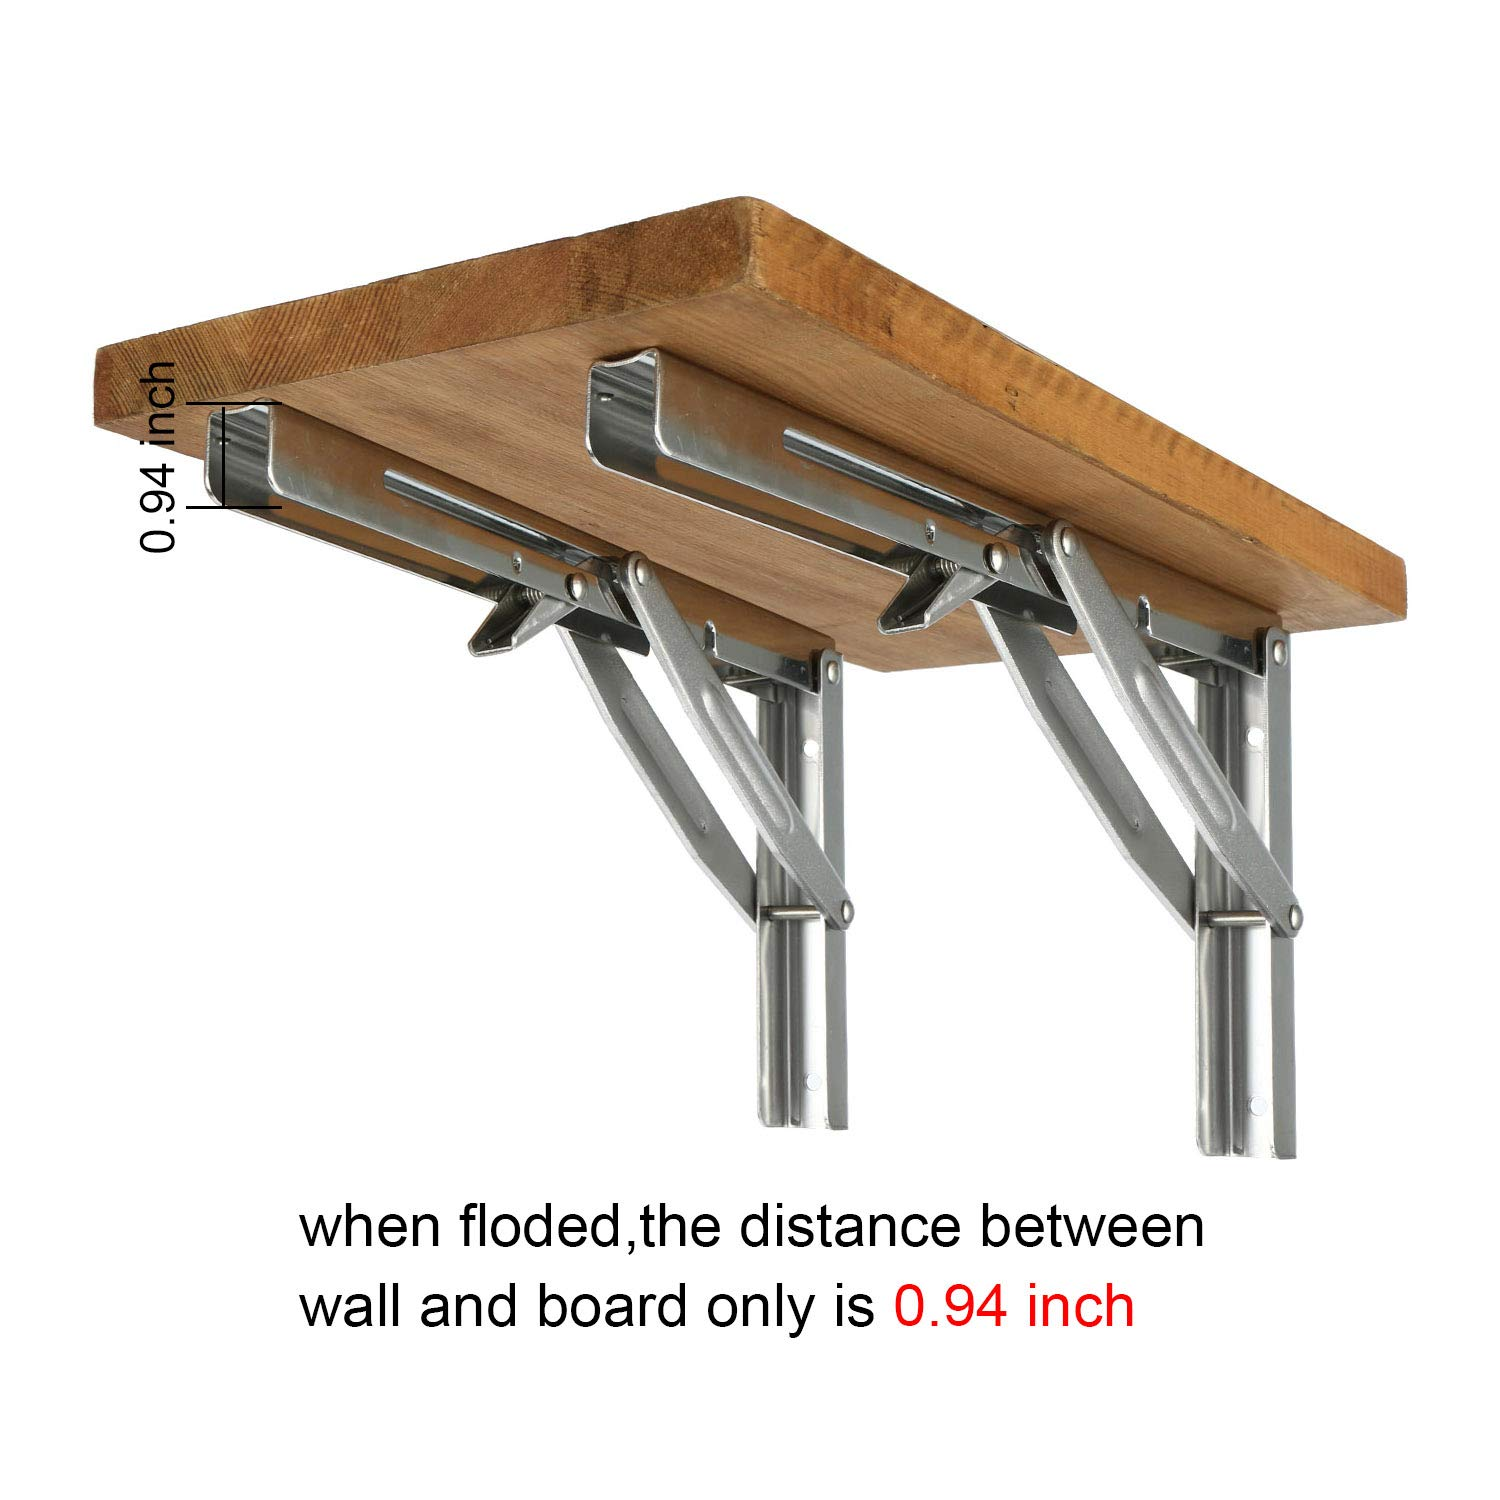 Mounting Screws and Board not Included Short Release Arm 300KG//660LBS Max Load DasMarine 2pcs Polished 304 SS Wall Mounted Folding Shelf Bracket Support for Table Bench Desk Support Bracket